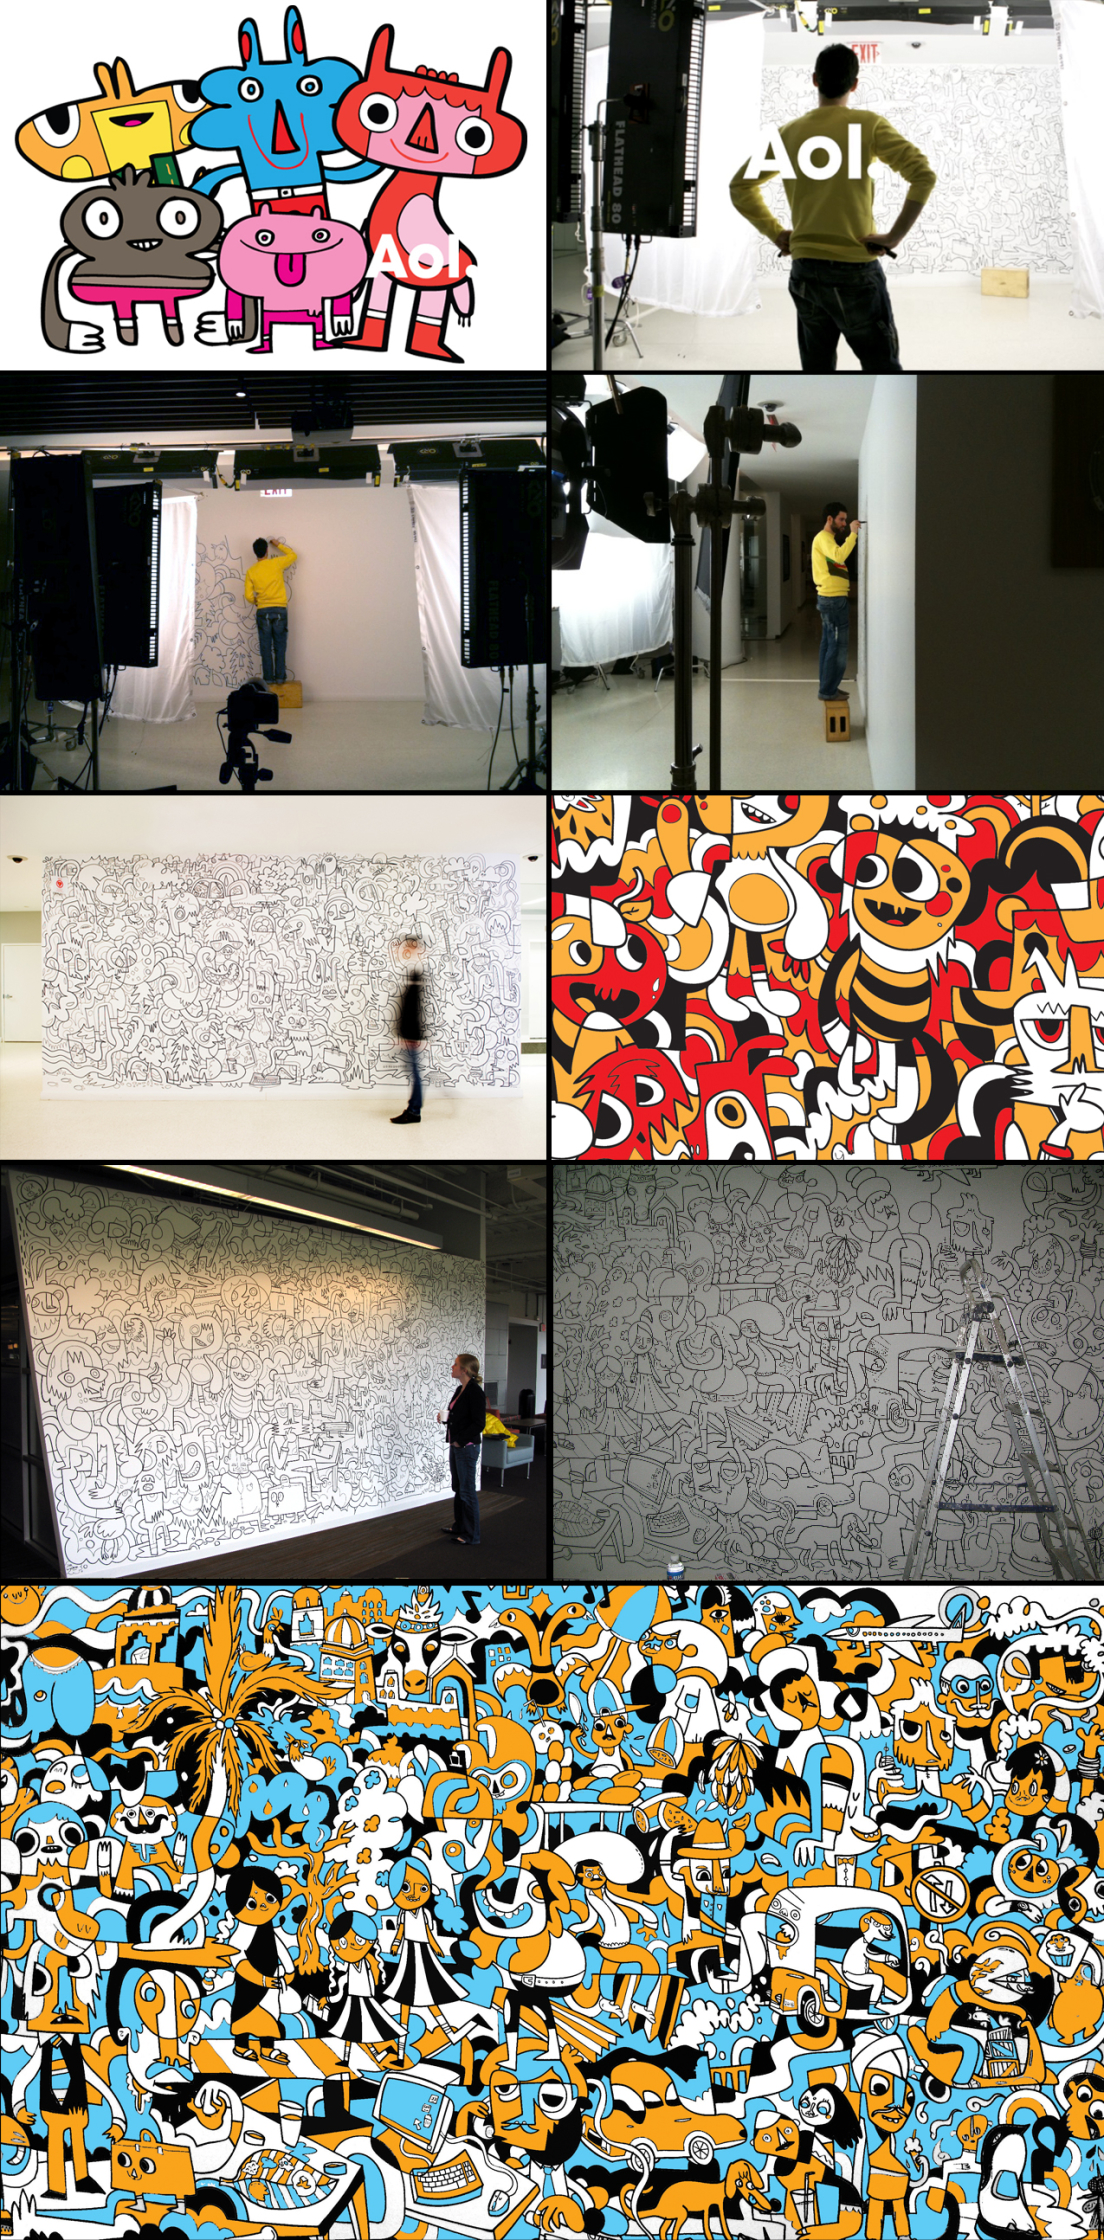 Jon Burgerman / Aol. Murals In New York, Washington + Bangalore